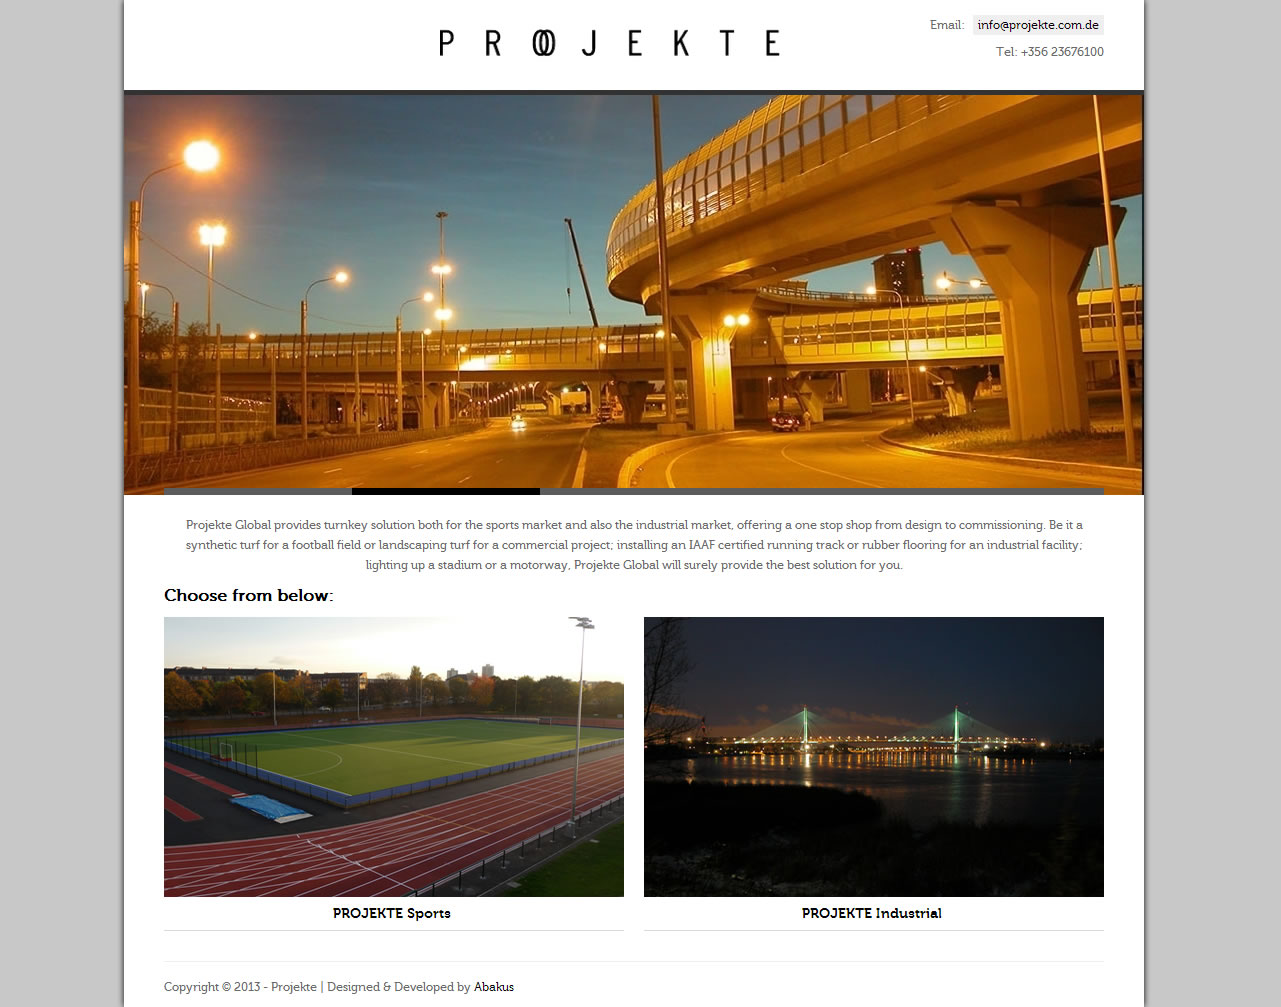 Projekte Global launch new online presence